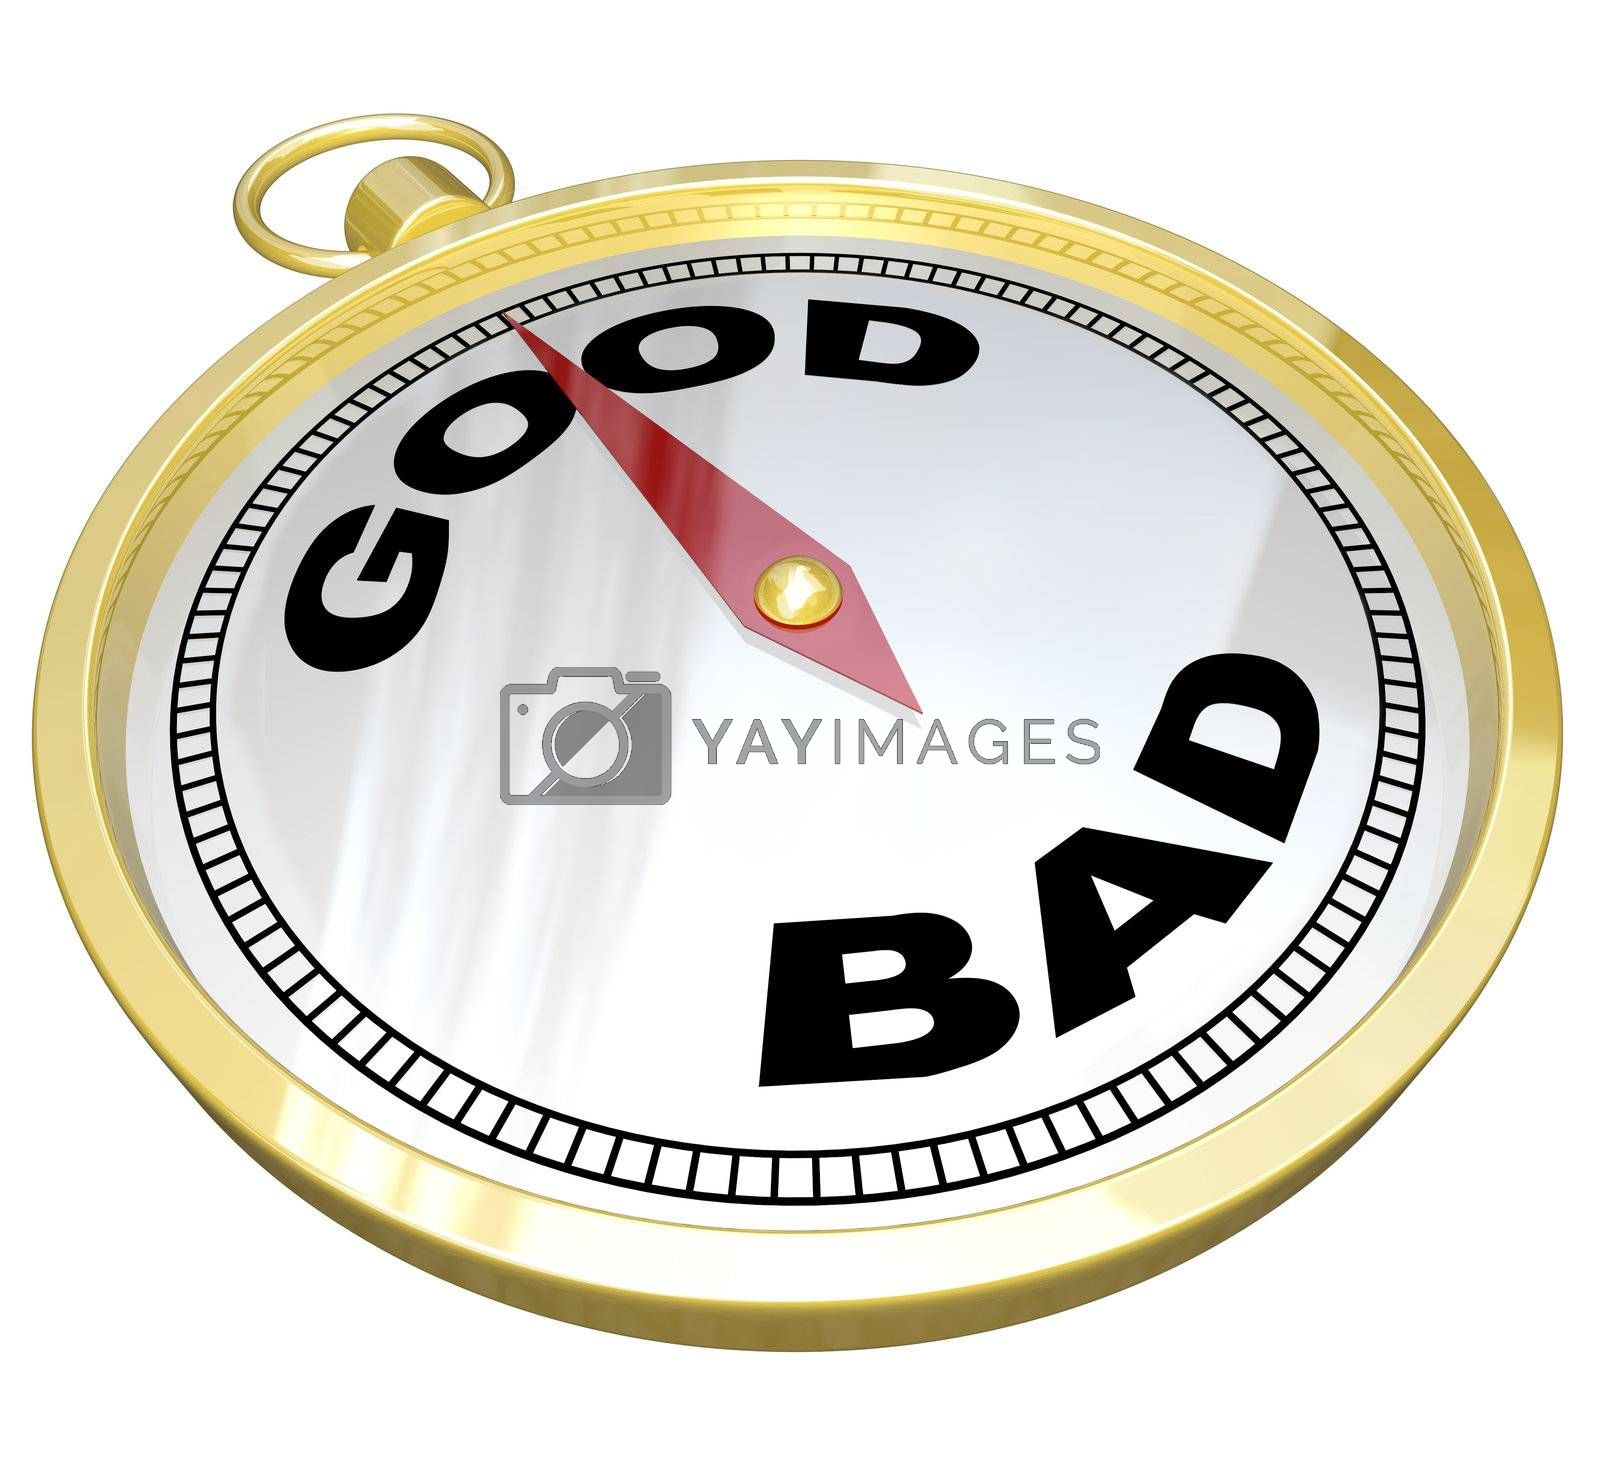 A gold compass with the words Good and Bad with needle pointing to Good, meaning that positive qualities outweigh negative characteristics in the quest for success